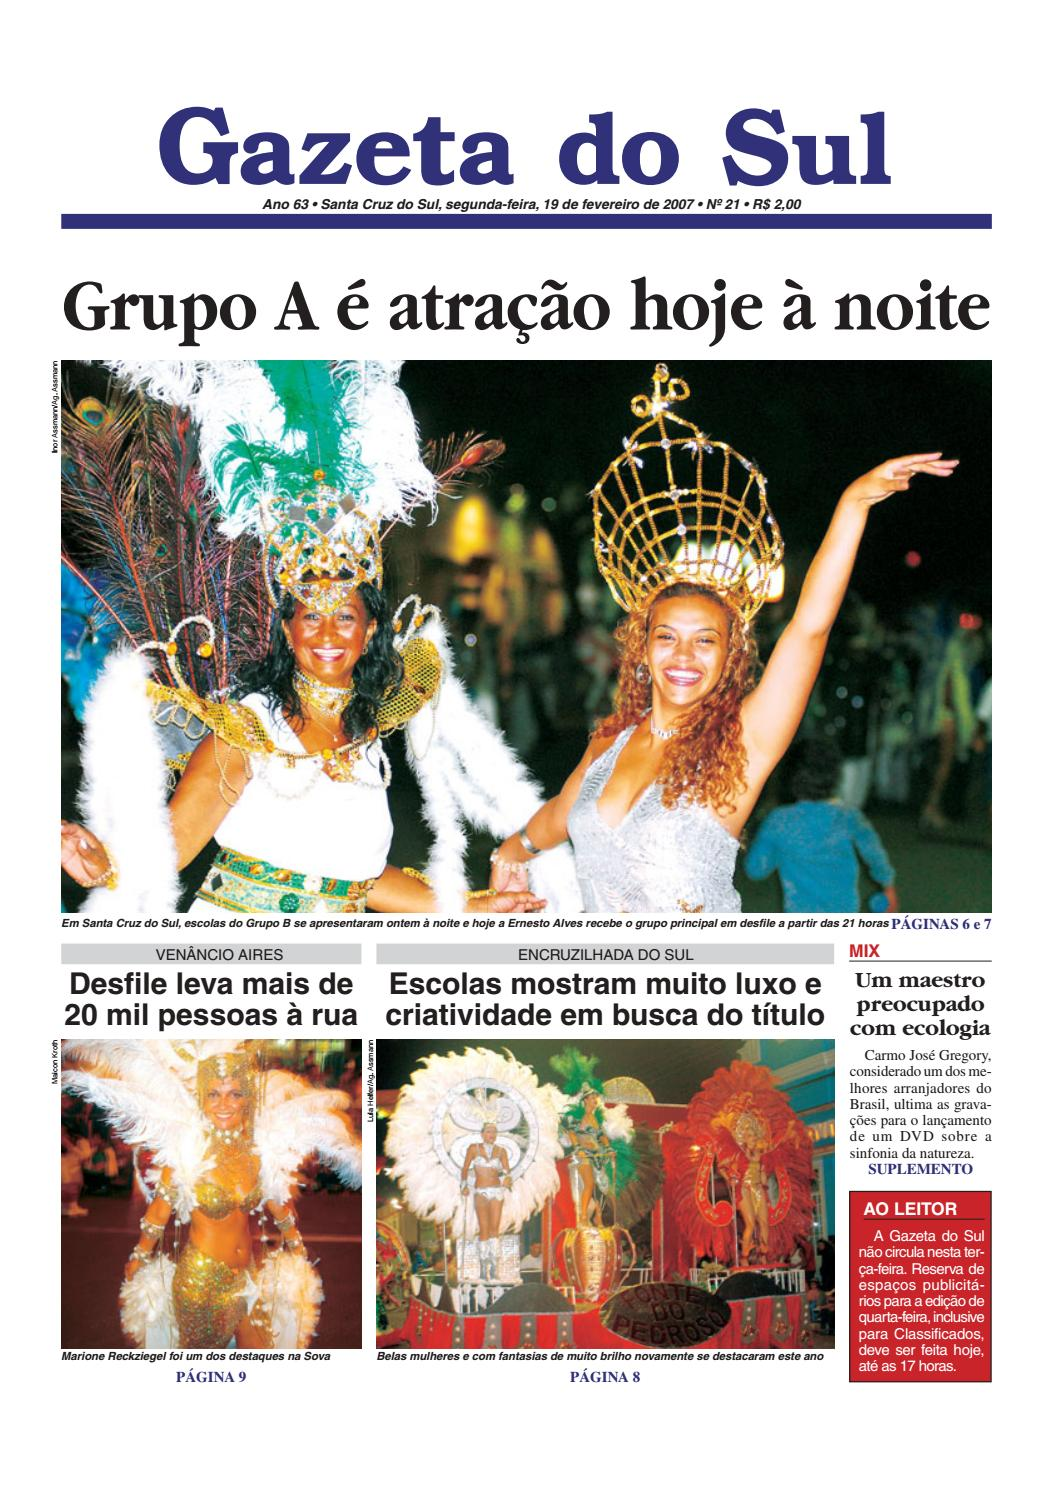 Jornal Gazeta do Sul Ano 63 Nº 21 by Portal Academia do Samba - issuu fb48f26357